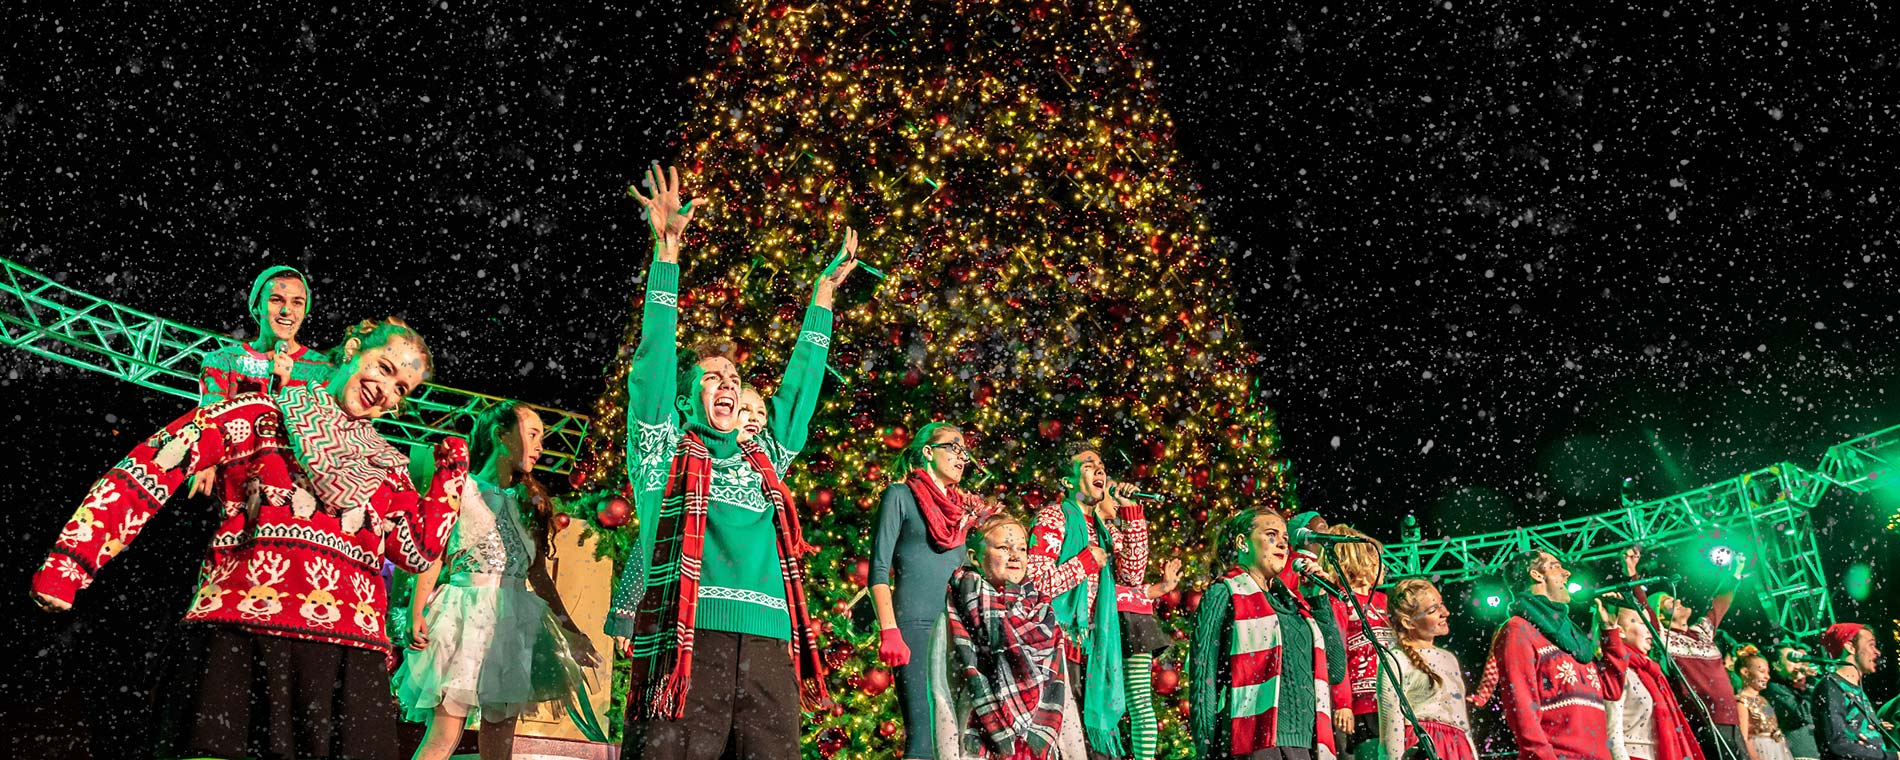 New Year's Eve Celebration at Kings Dominion's Holiday Event